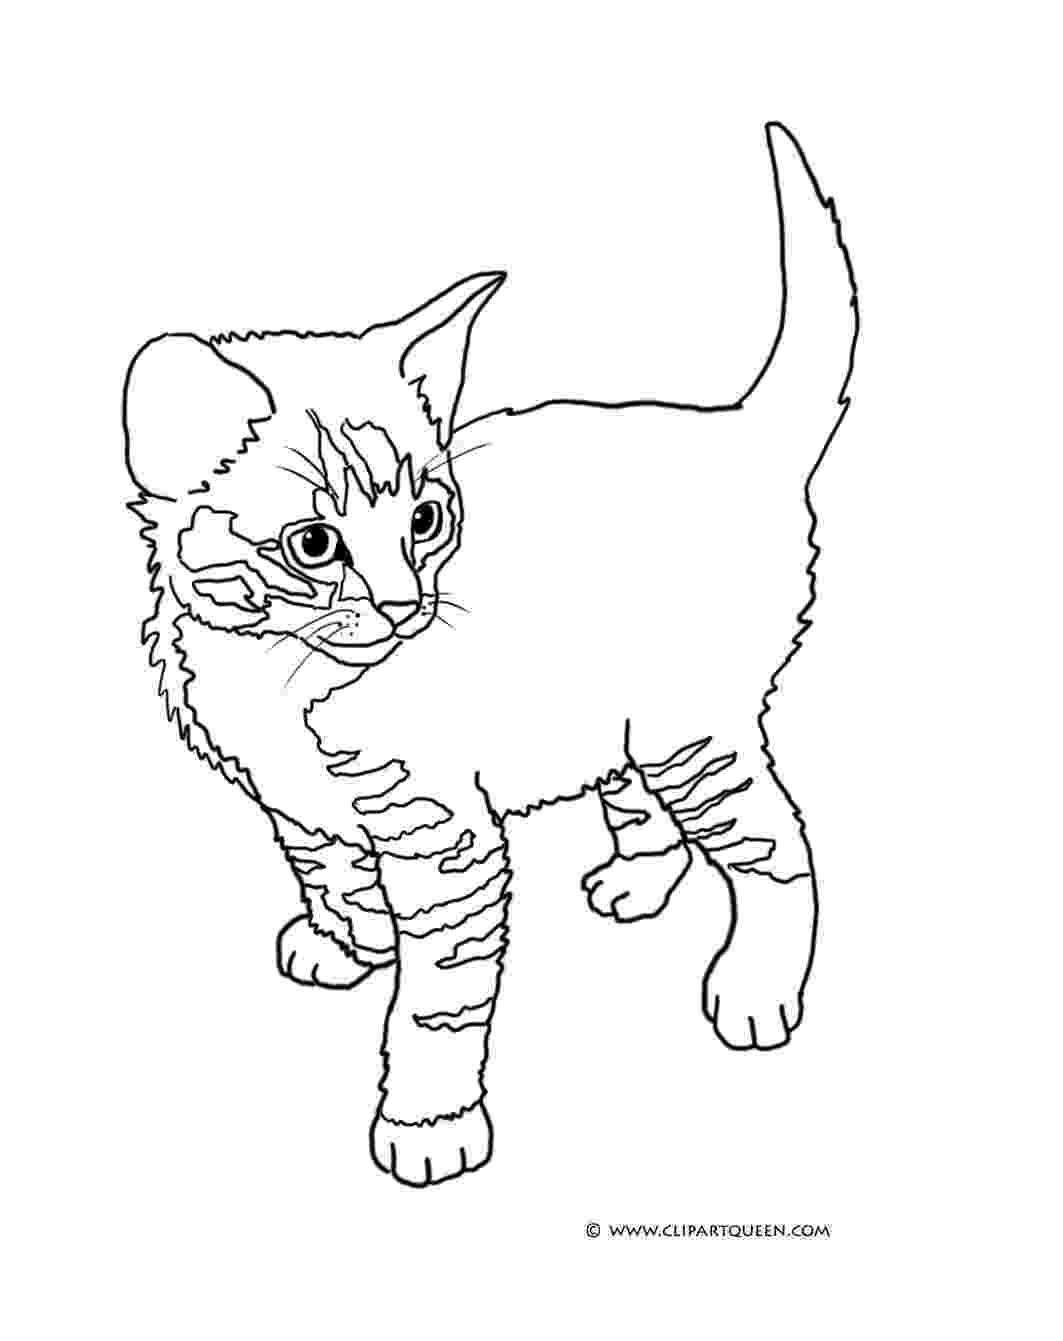 kitten color pages kitten coloring pages best coloring pages for kids pages kitten color 1 1